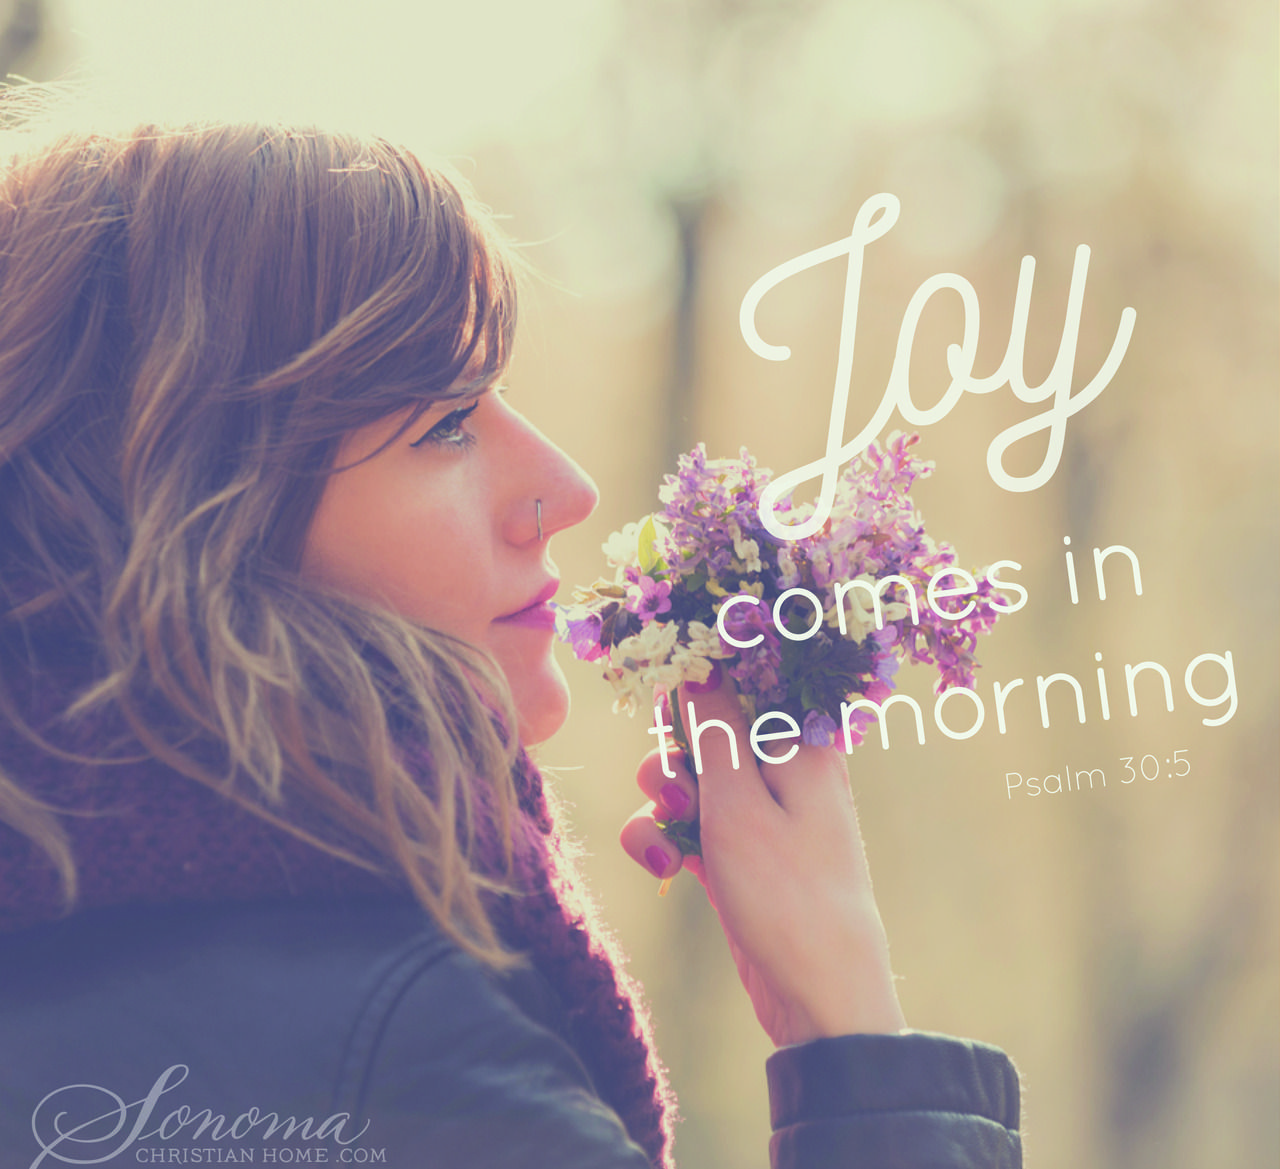 #Joy comes in the morning - Psalm 30:5 #Christian #Praise #Faith http://bit.ly/1r3nXZx